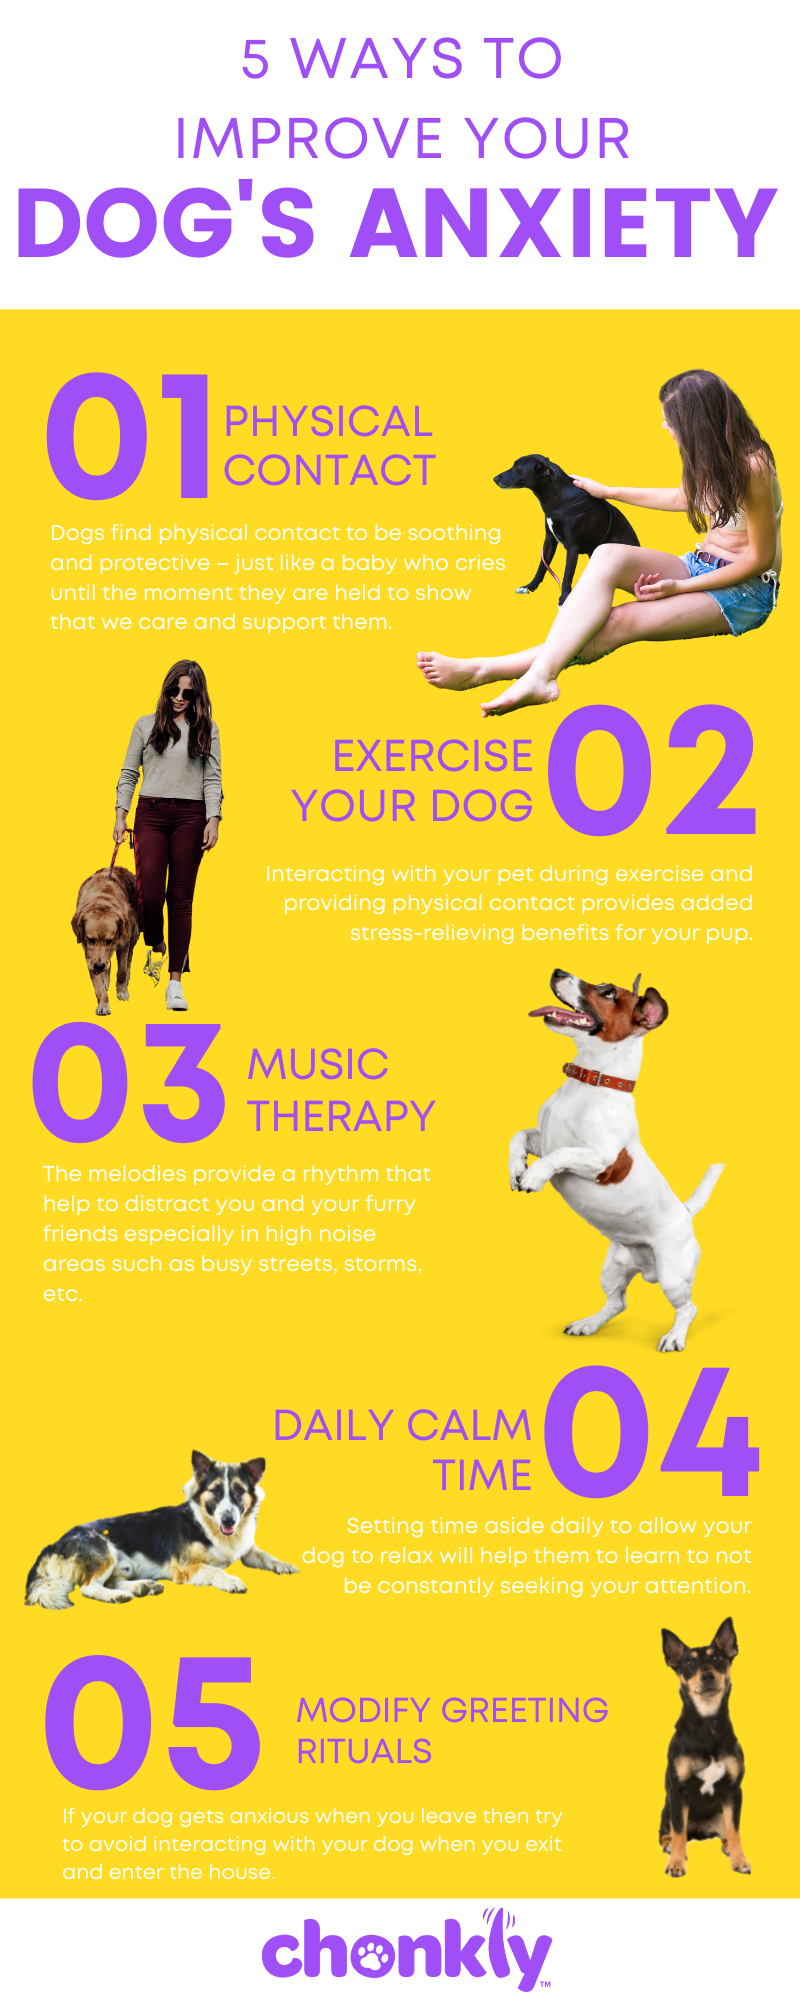 5 Ways to Improve Your Dog's Anxiety Infographic